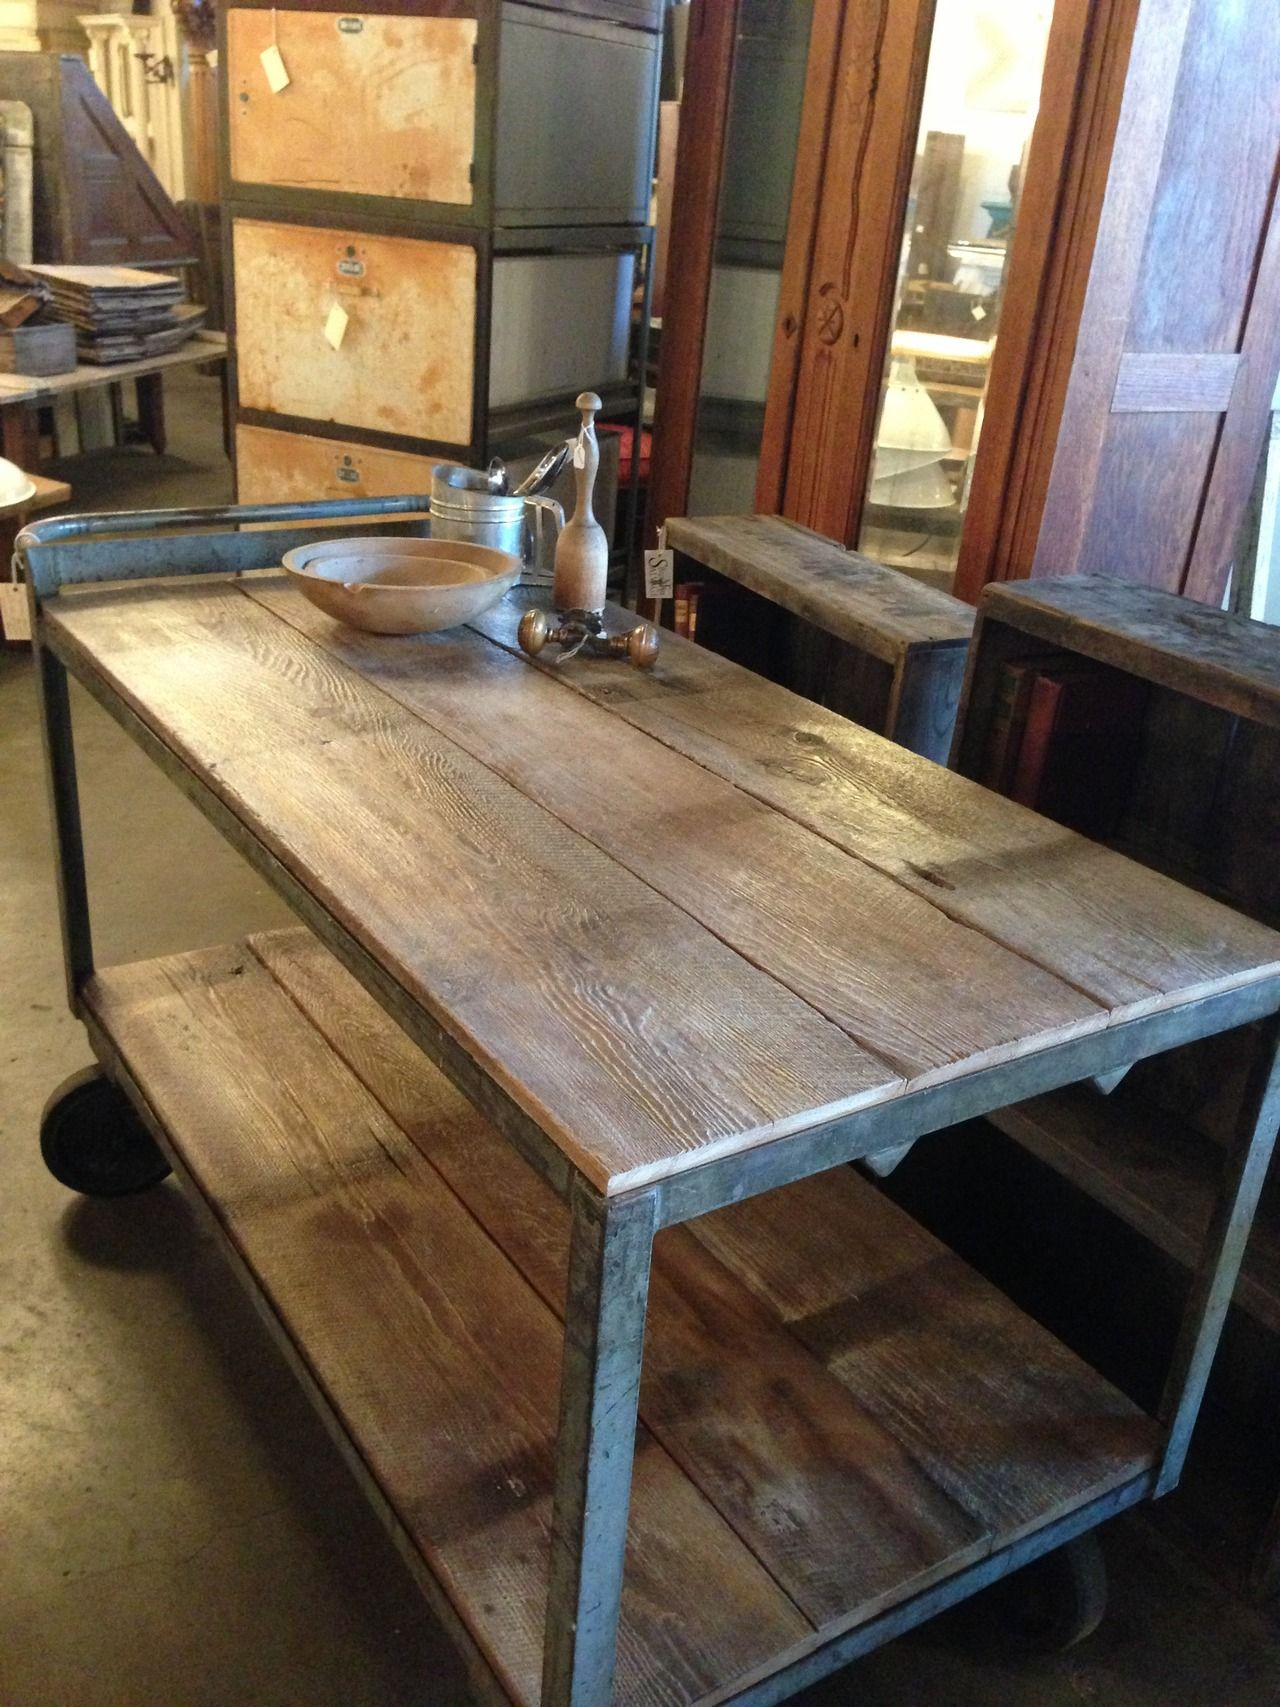 Design Industrial Kitchen Island reclaimed barn wood industrial cart kitchen island from silver fox salvage los angeles